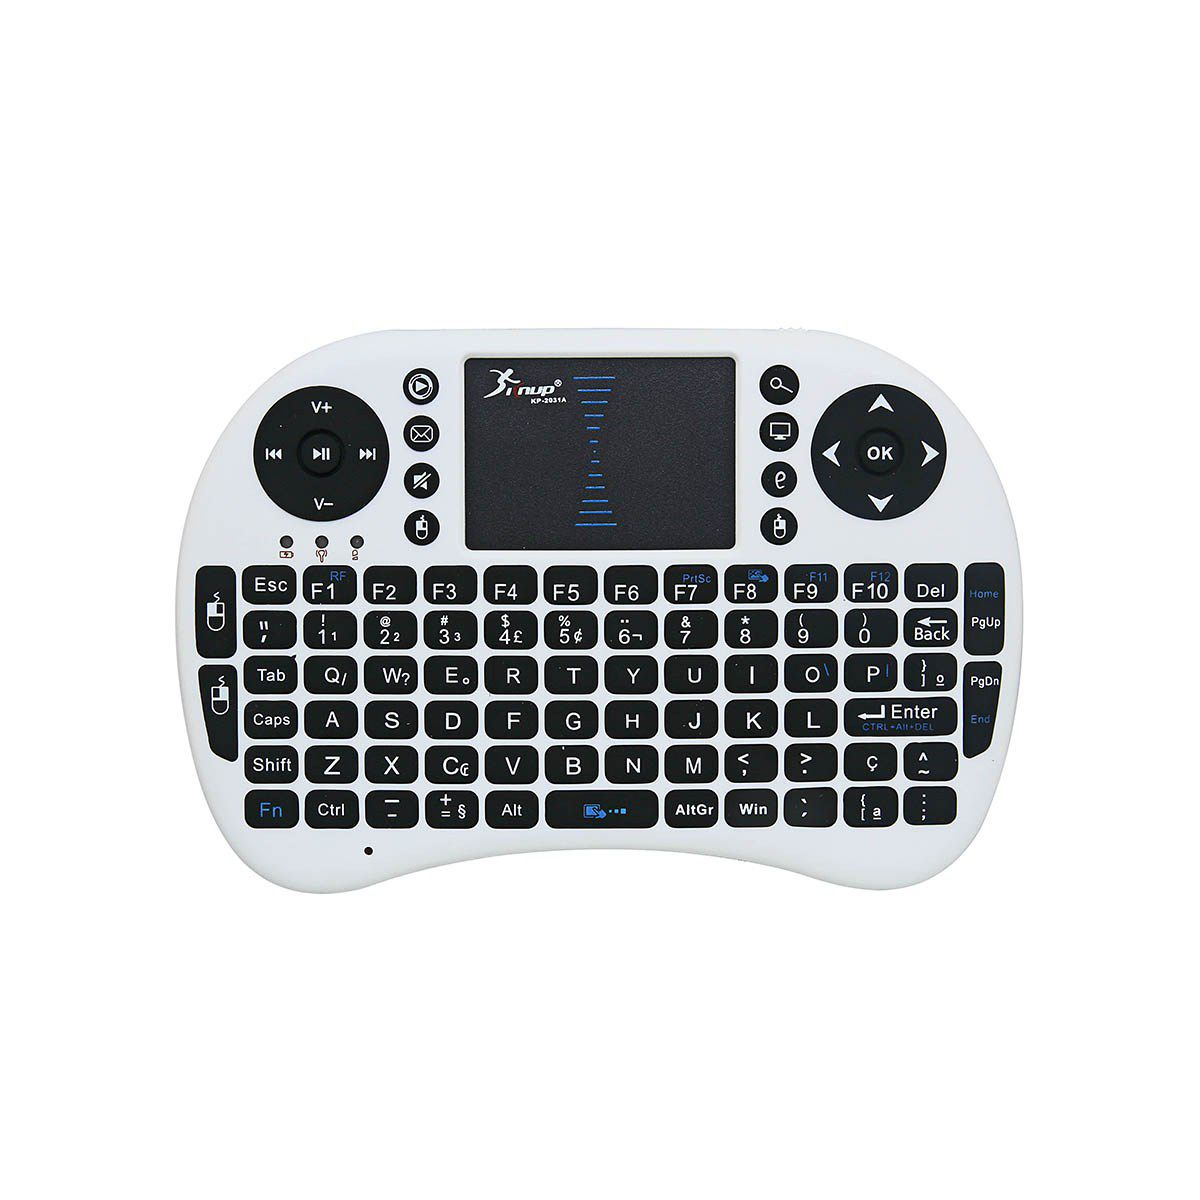 Mini Teclado S/ Fio Usb Smart Tv Box Ps3 Xbox KP-2031A Branco